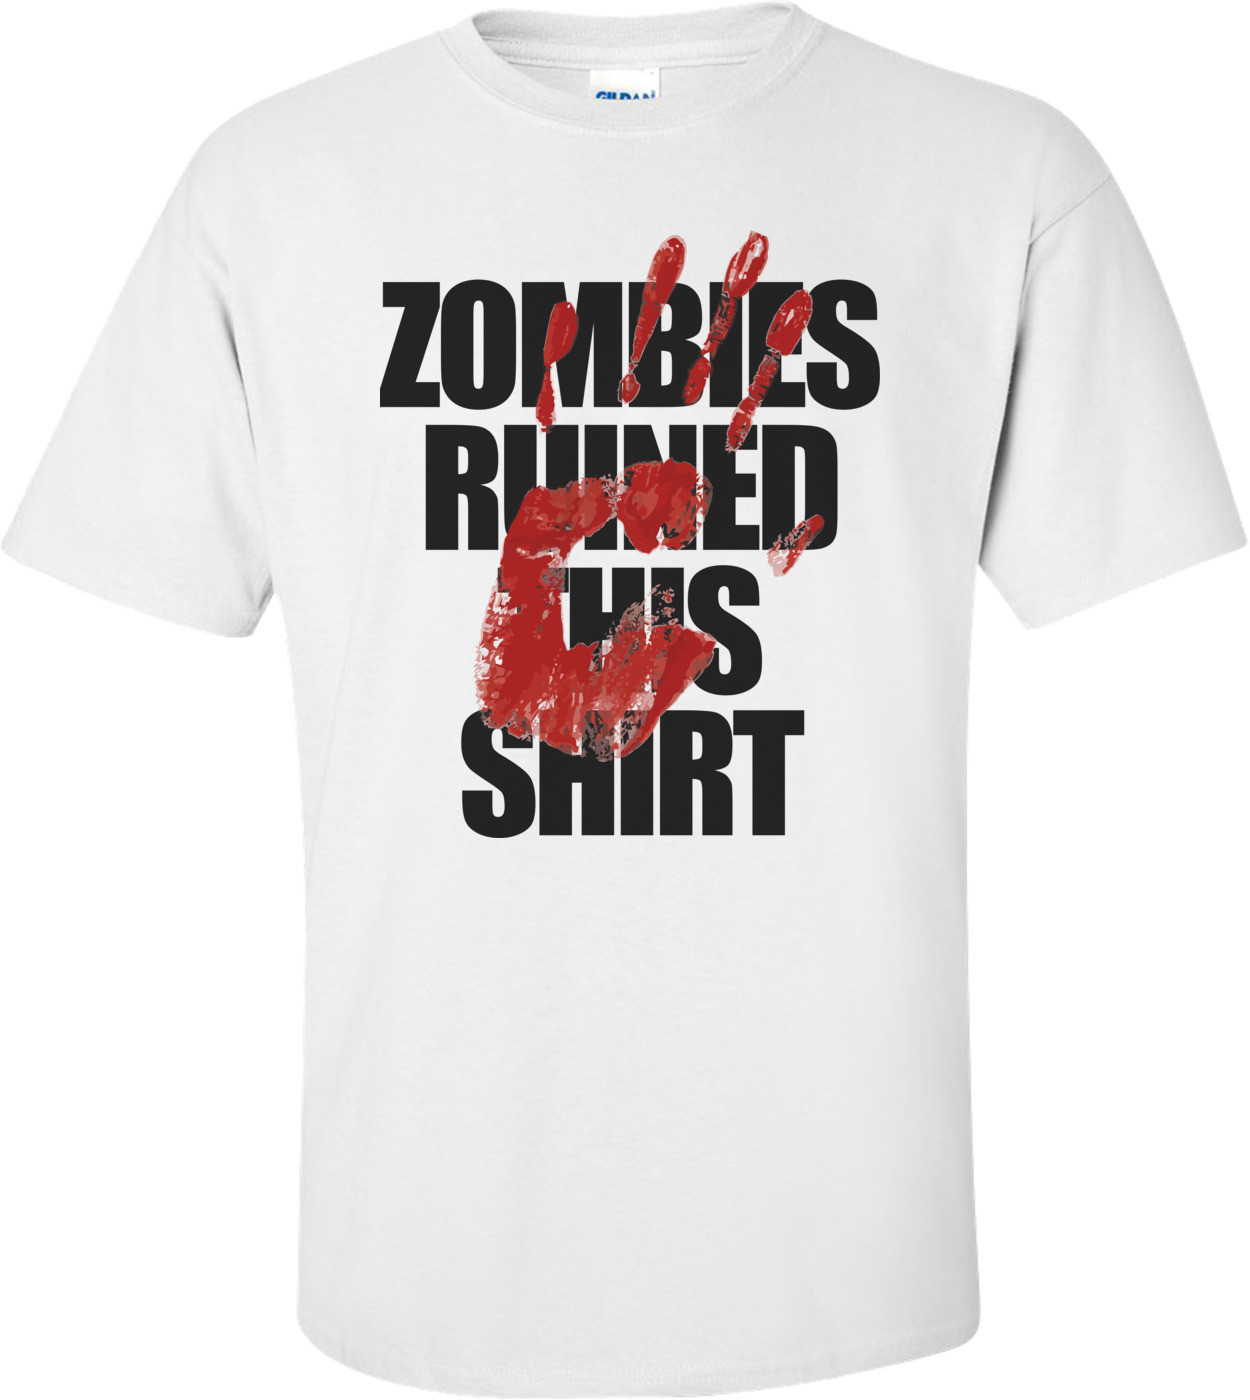 Zombies Ruined This Shirt - Cool Zombie Shirt